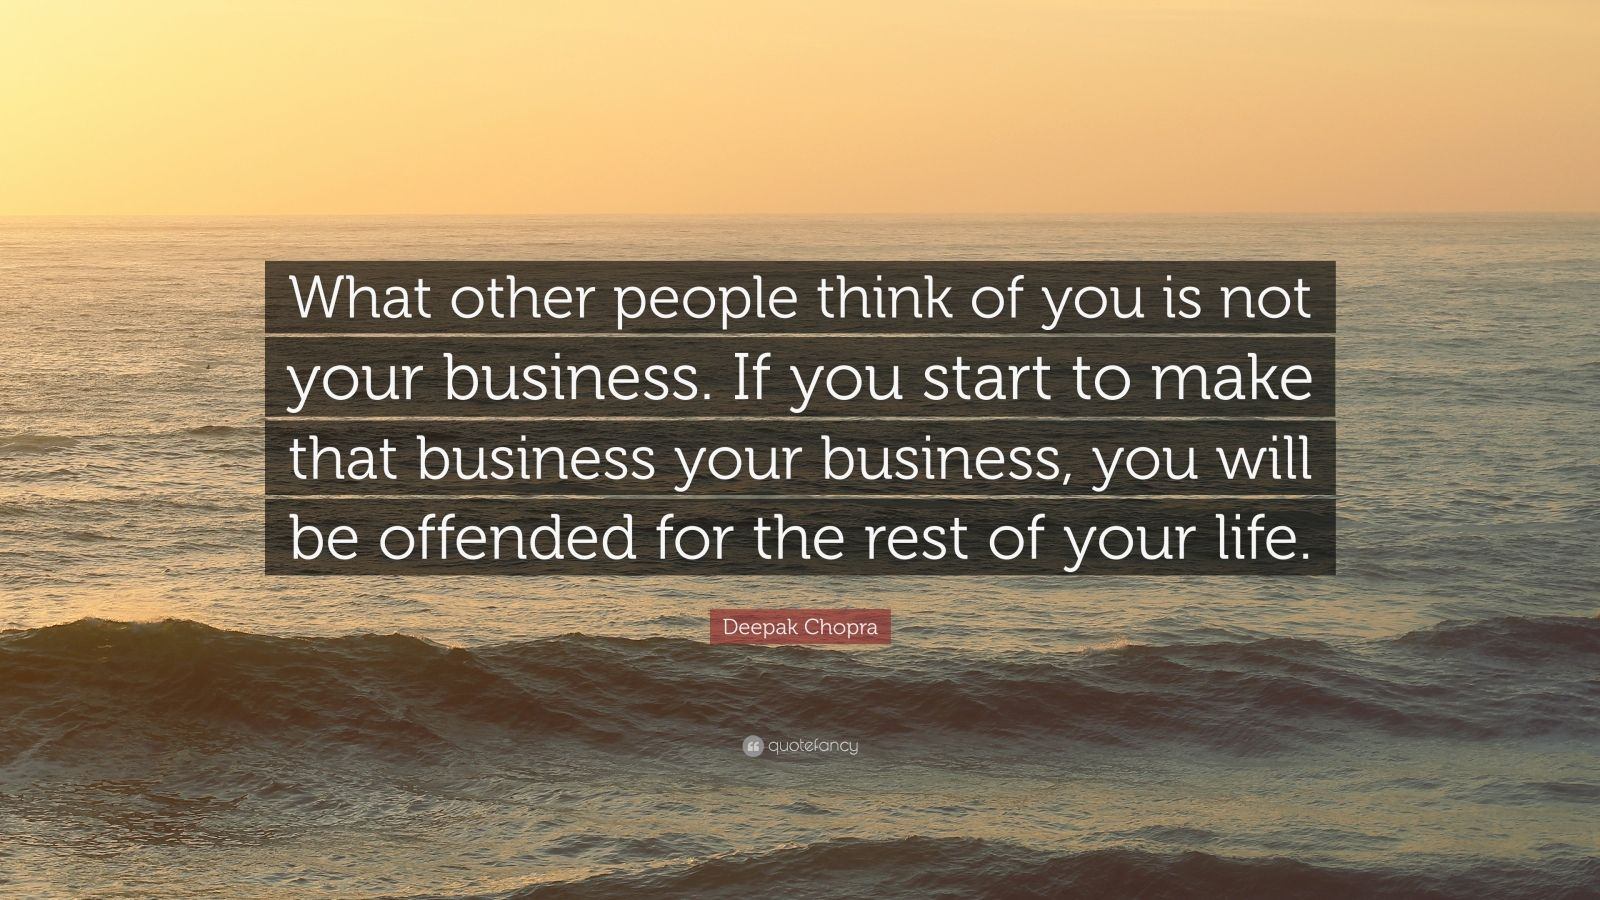 """Deepak Chopra Quote: """"What other people think of you is not your business. If you start to make that business your business, you will be offended for the rest of your life."""""""